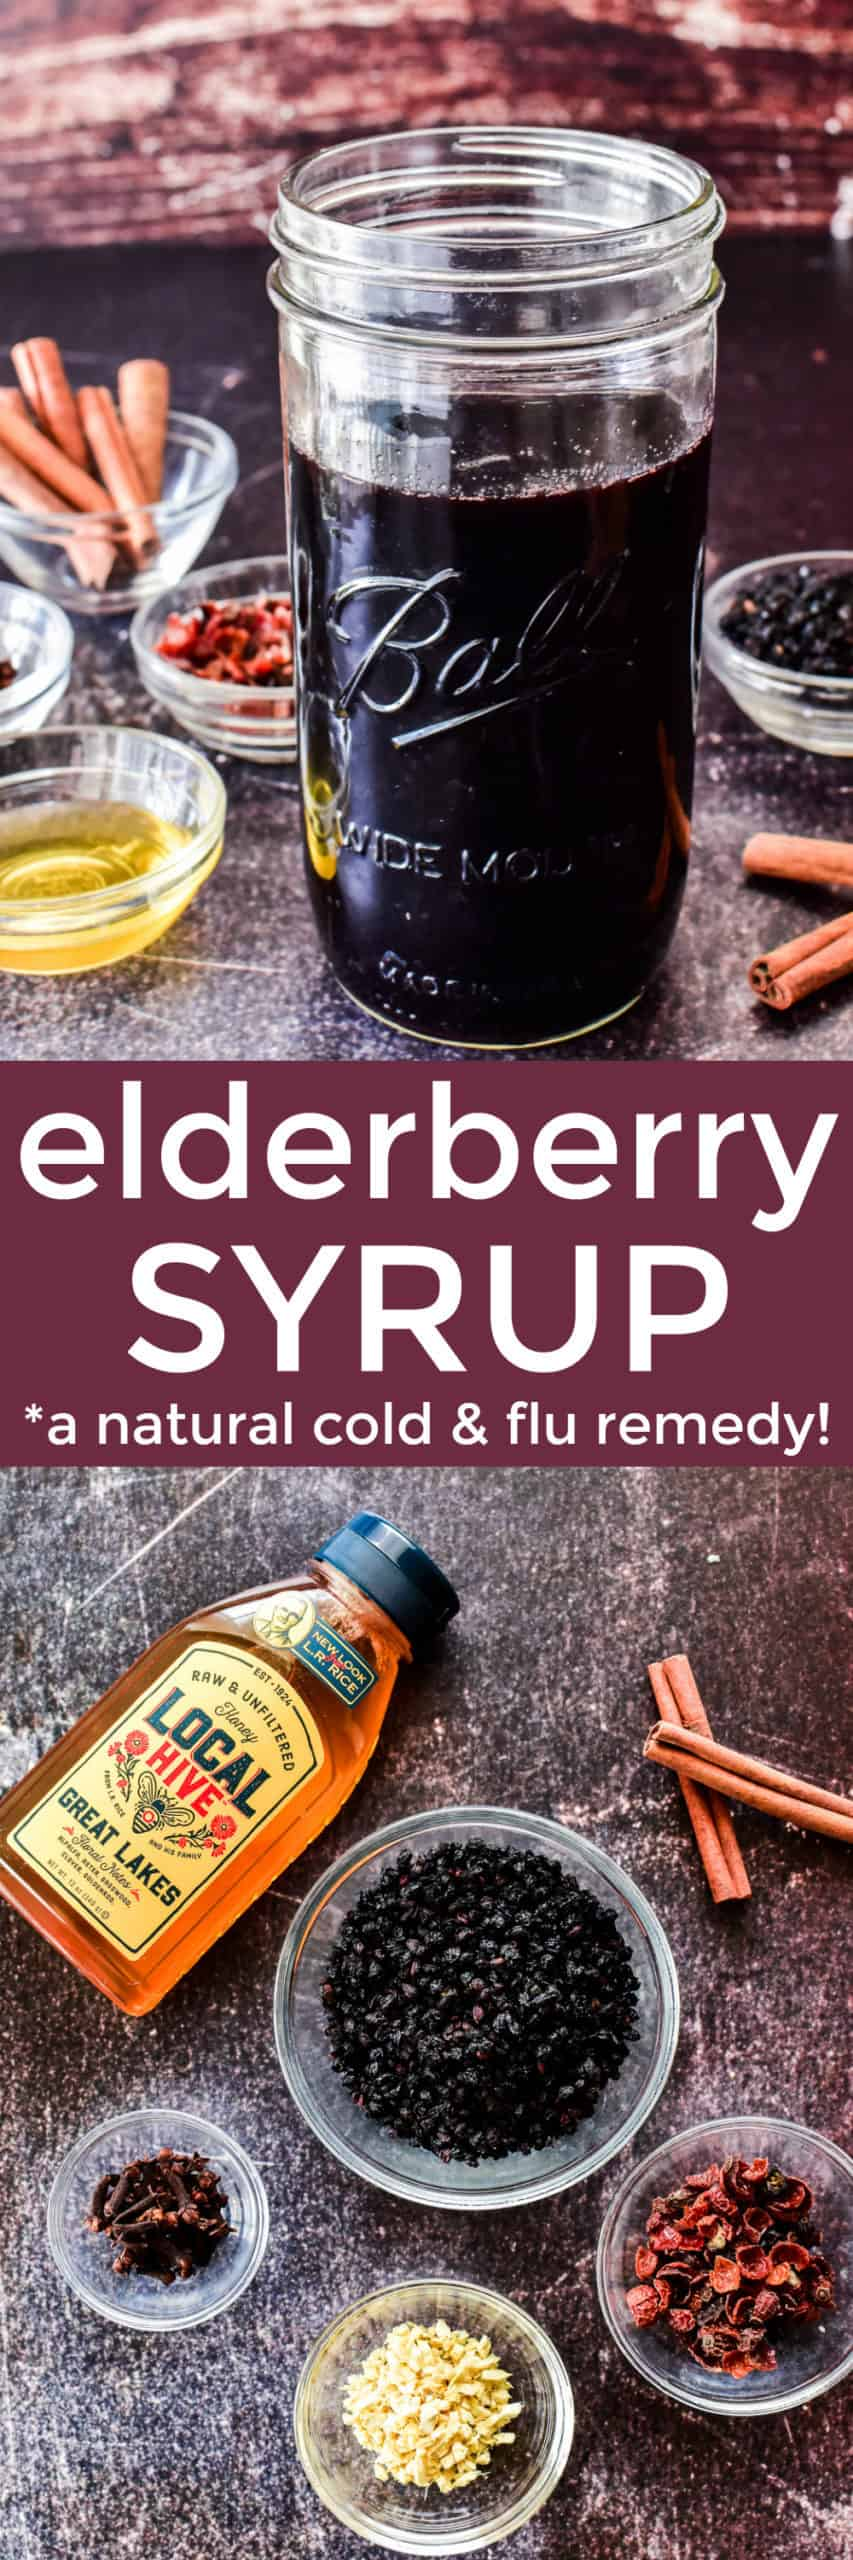 Collage image of Elderberry Syrup ingredients and finished product